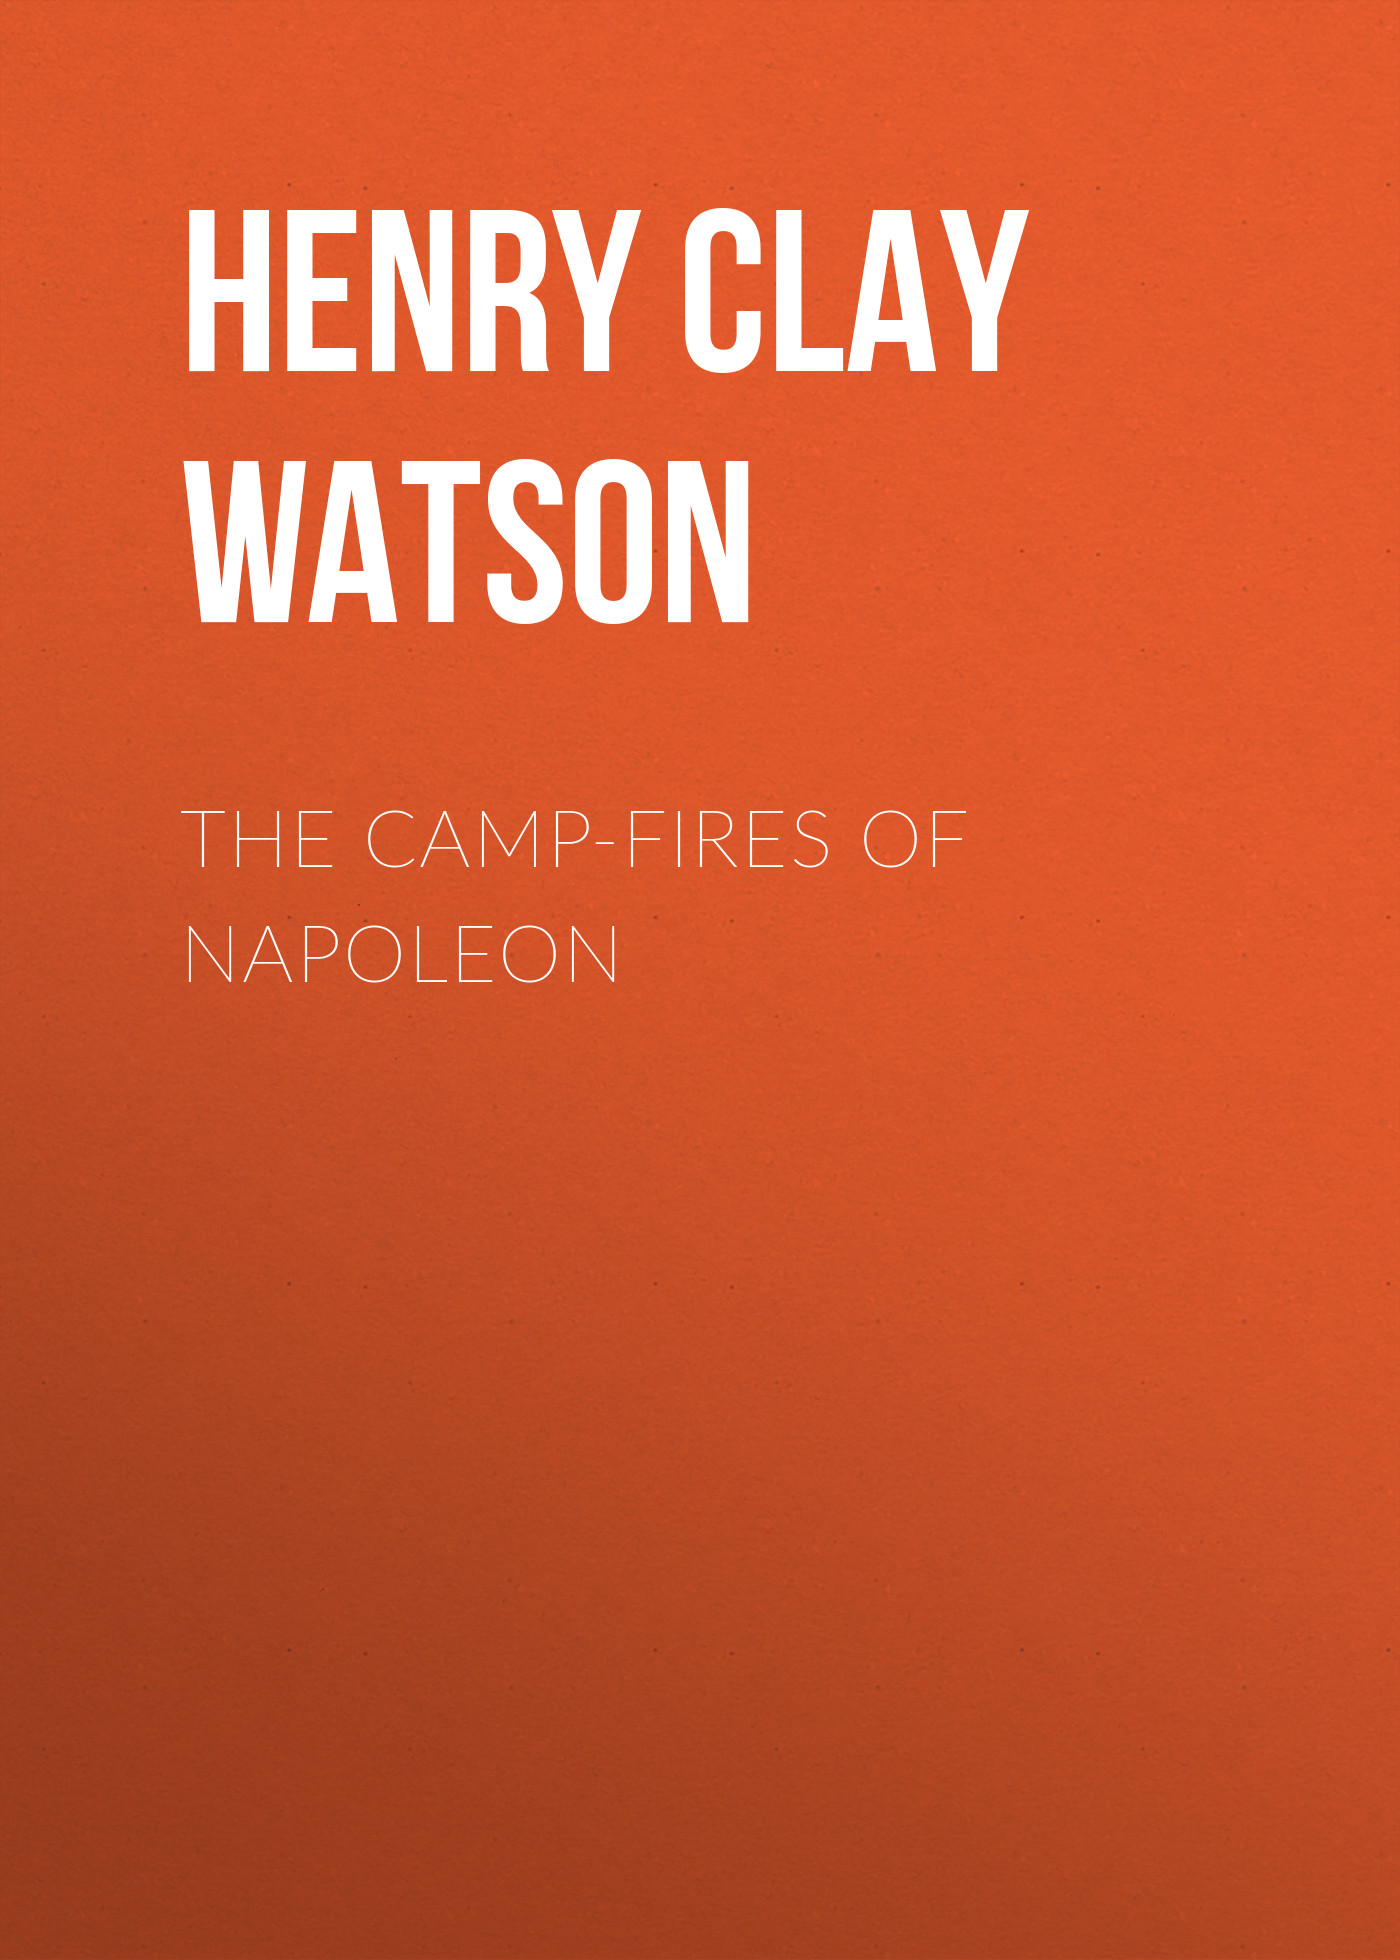 Henry Clay Watson The Camp-fires of Napoleon friendly fires friendly fires pala